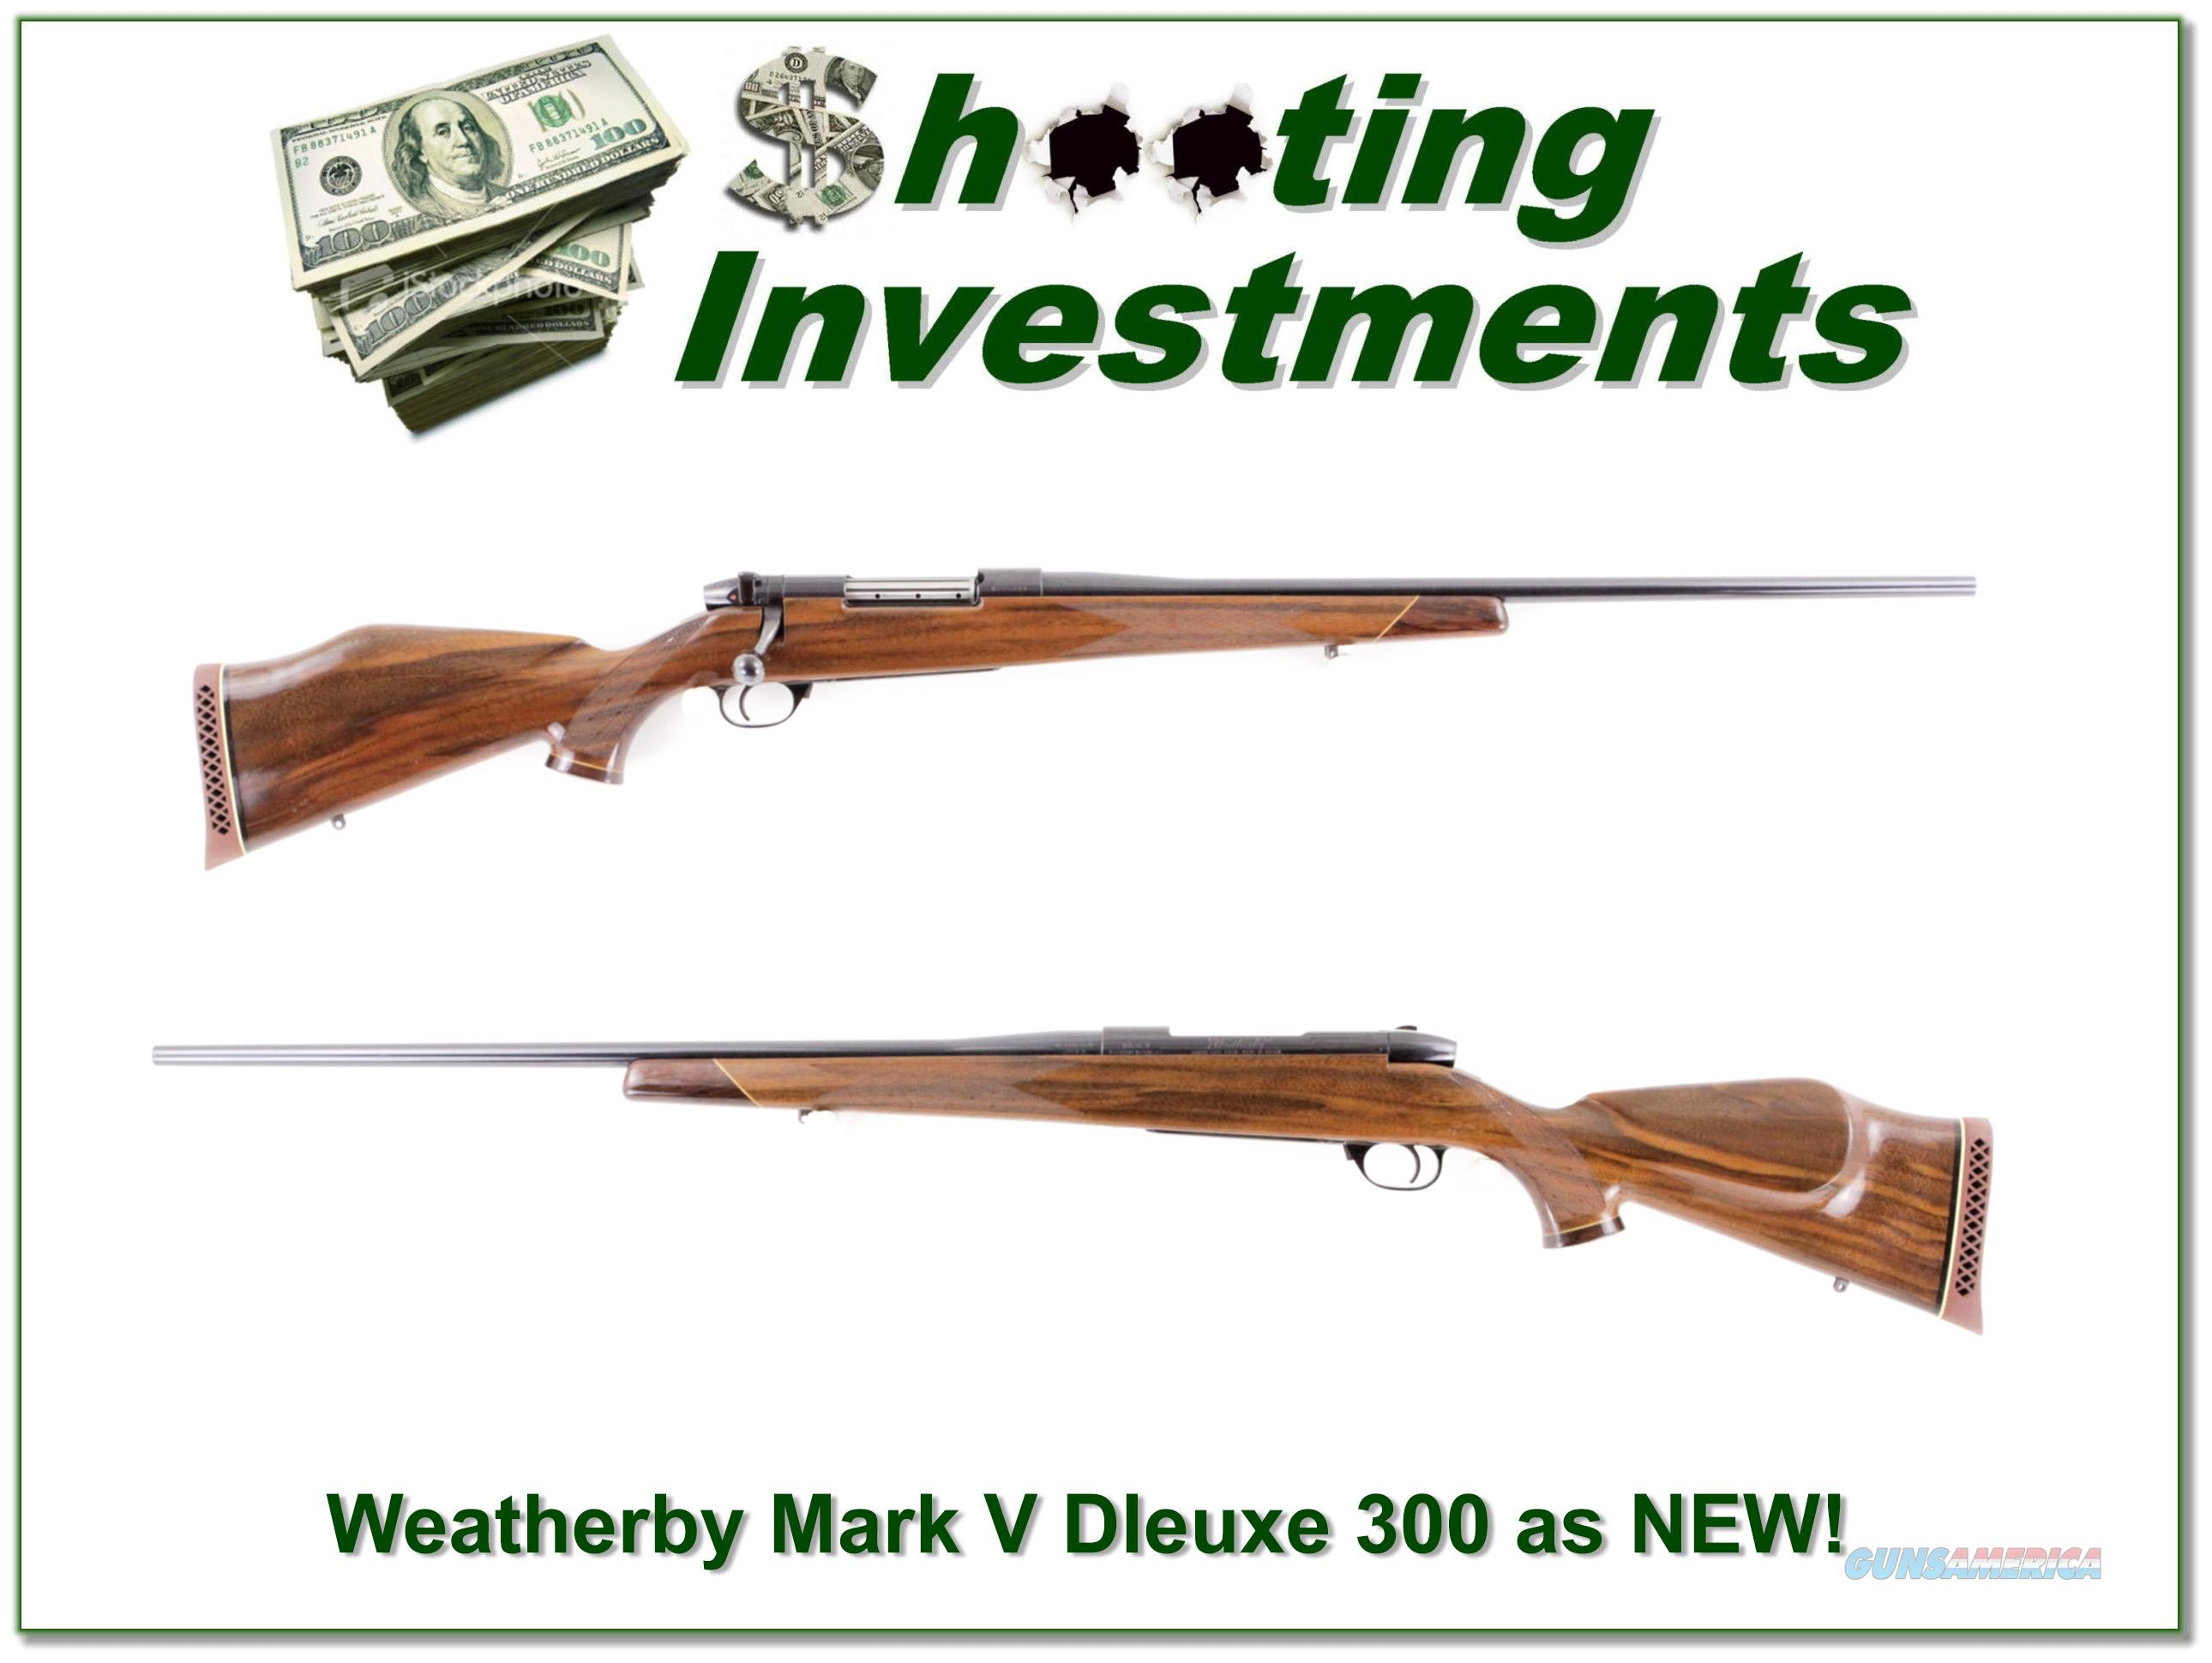 Weatherby Mark V Dleuxe 300 Wthy as new!  Guns > Rifles > Weatherby Rifles > Sporting